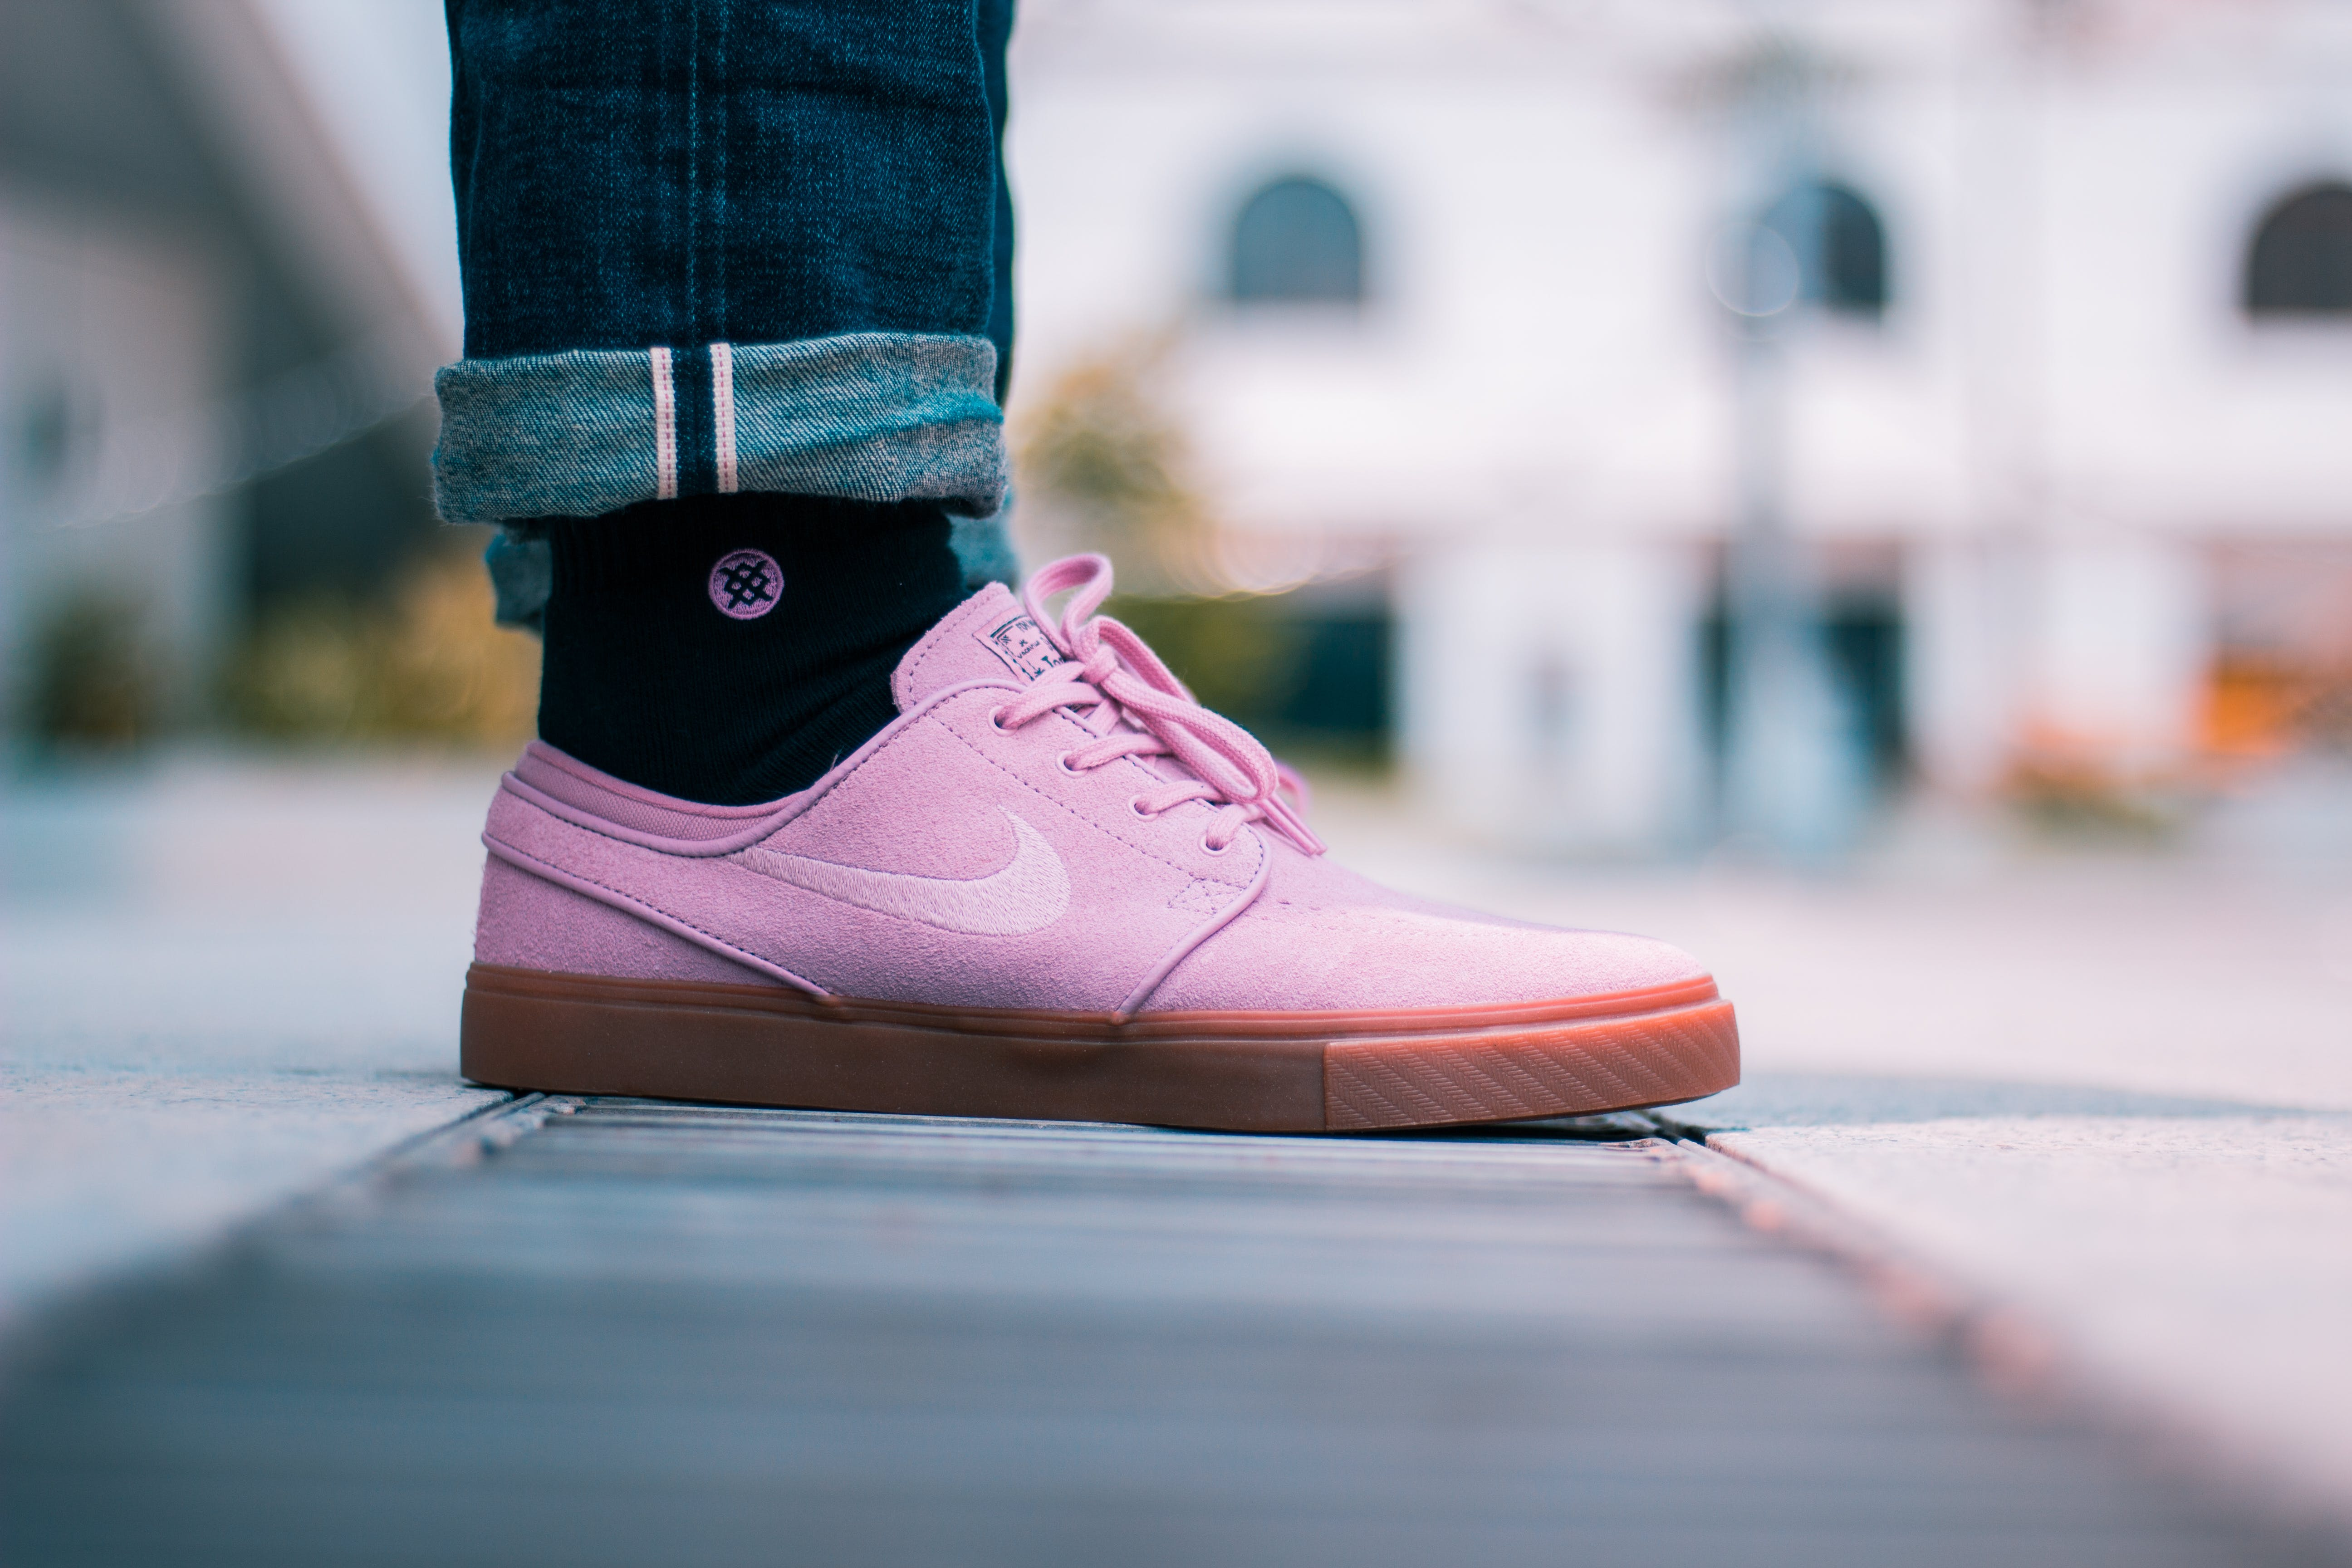 Selective Focus Photo of Person Wearing Pink Nike Low-top Sneakers